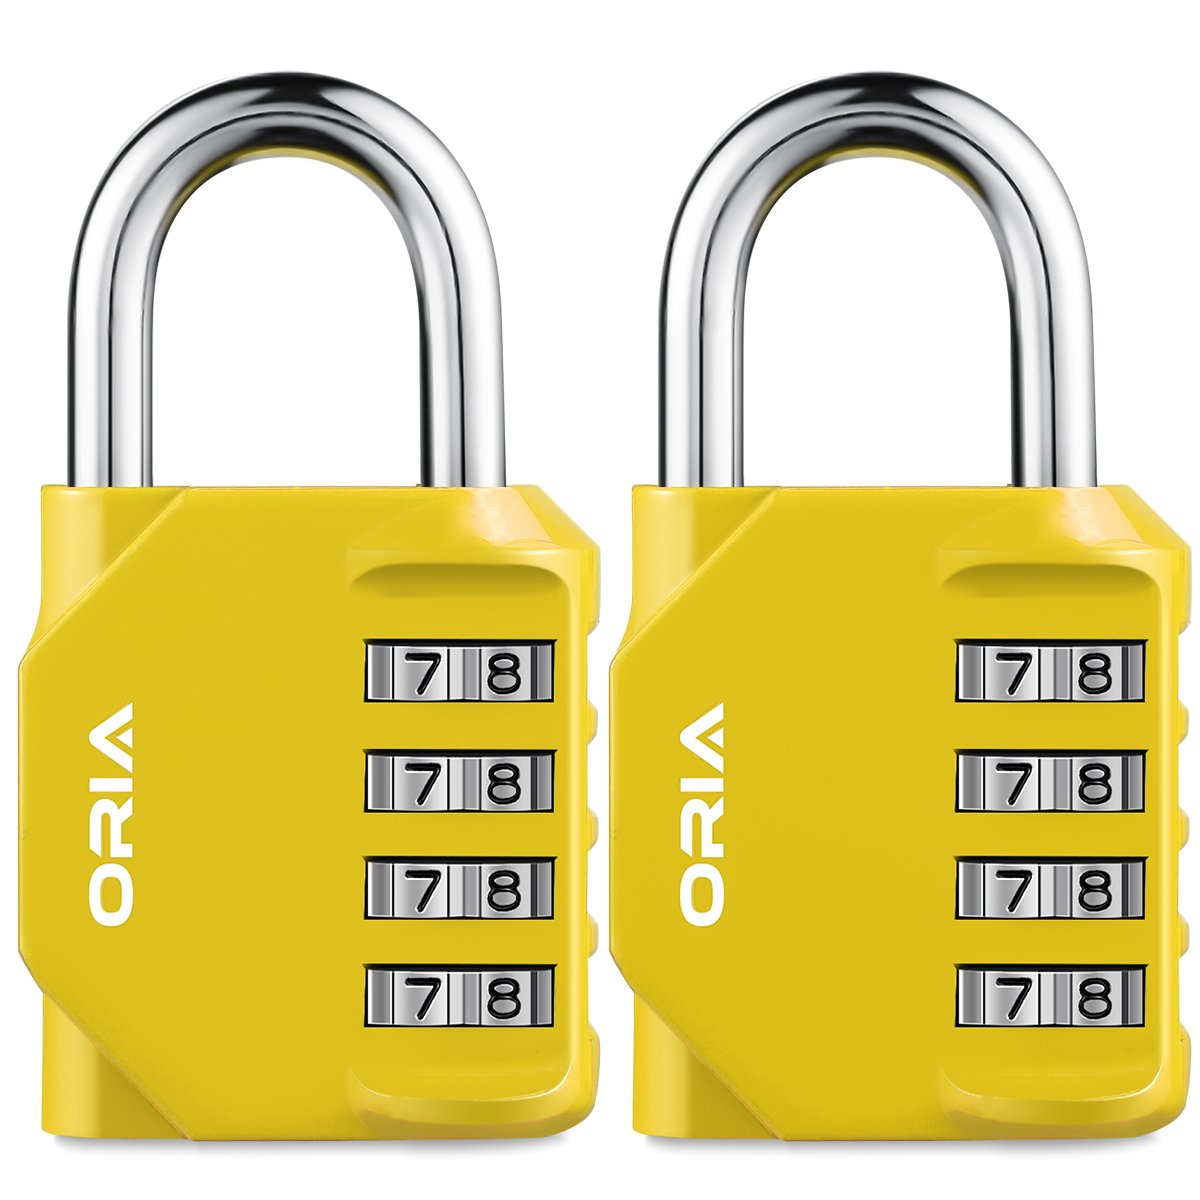 Oria 2 Pack Combination lock, 4 Digit PadLock, Resettable Security Locks, Anti Rust and Waterproof Silver for School, Employee, Gym & Sports Locker, Toolbox, Filing Cabinets etc. (Yellow)